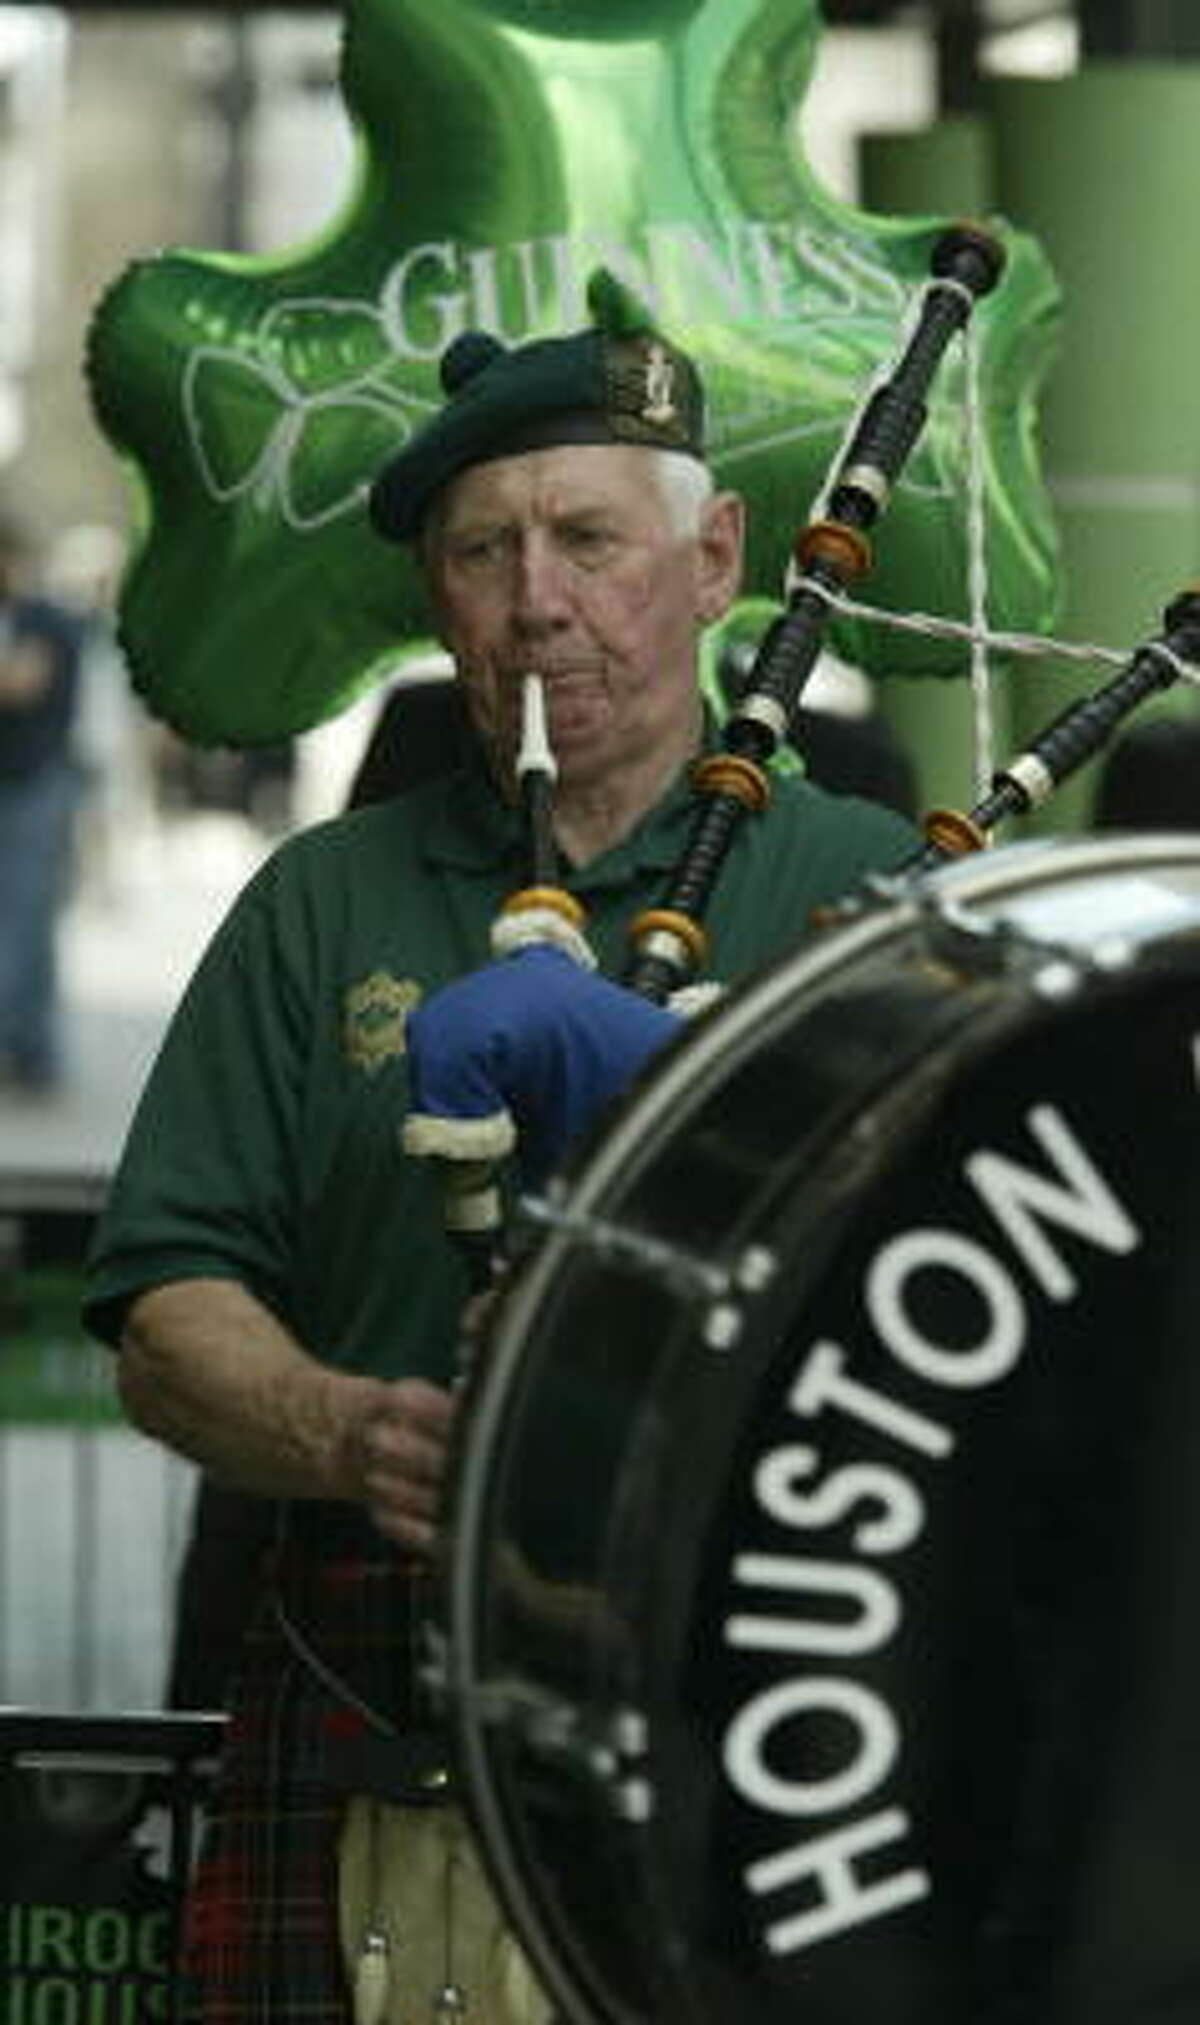 Houston Highlanders Pipe Band: 12:30 April 18